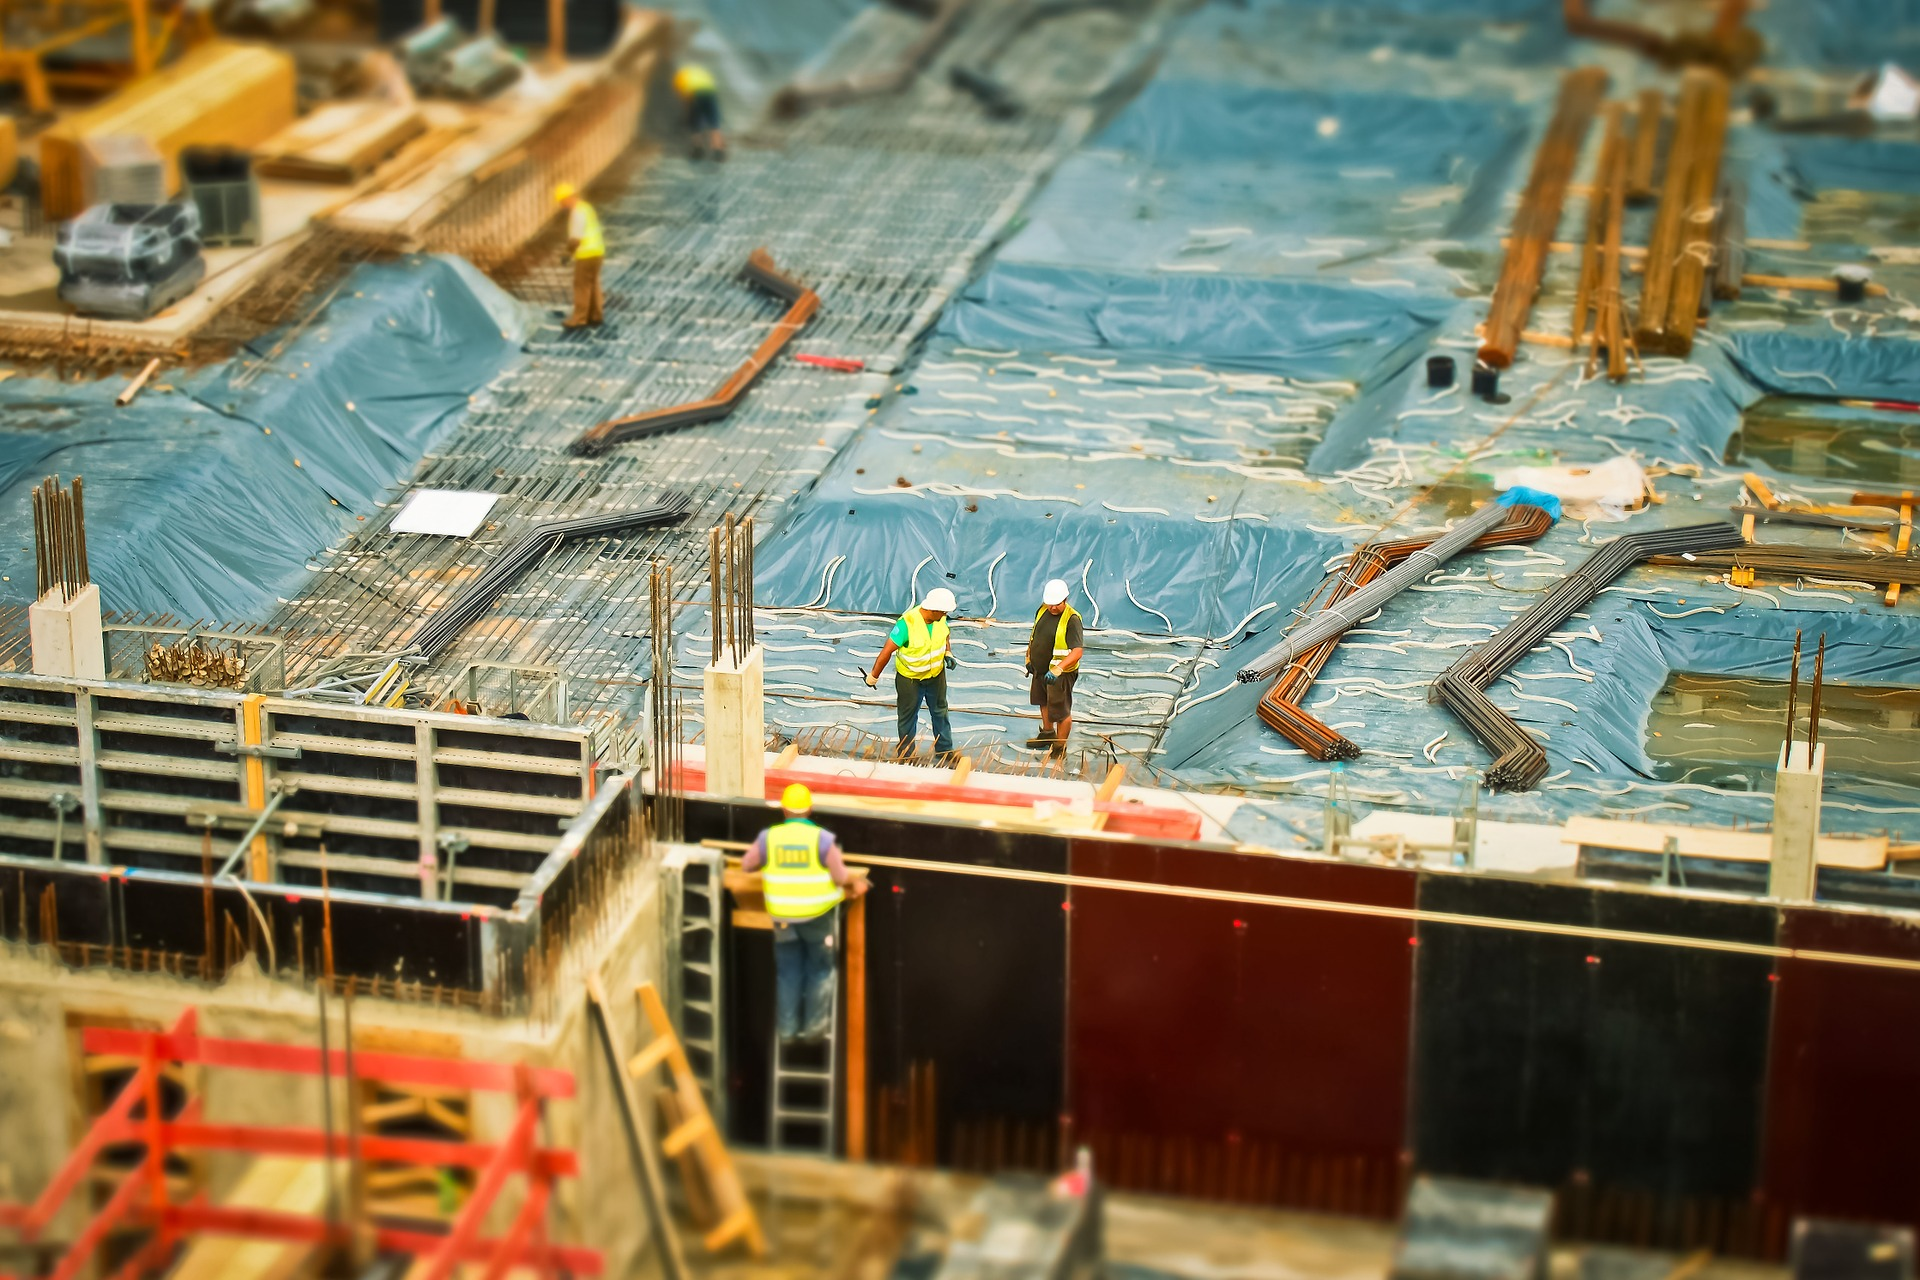 Best Performing Construction Sites Revealed